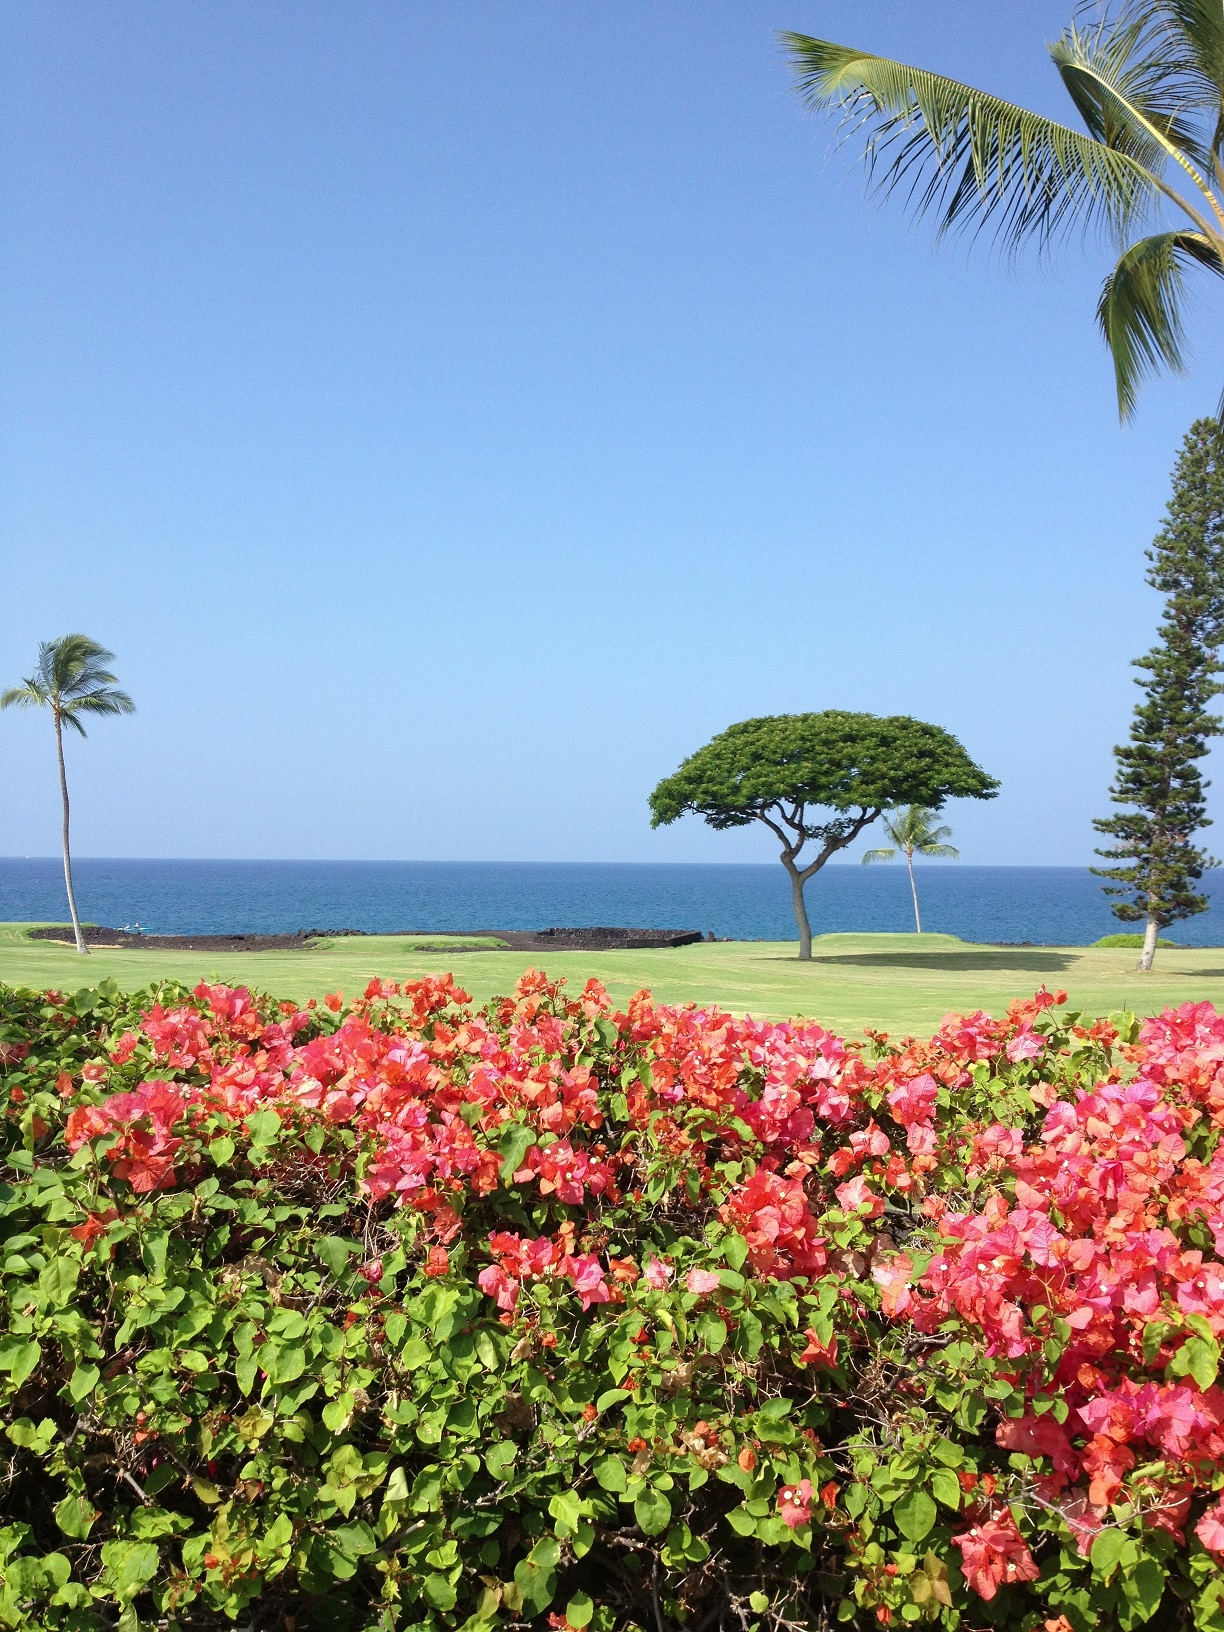 Shell Vacations Club Kona Coast Resort I Timeshare Users Group - Shellvacationsclub